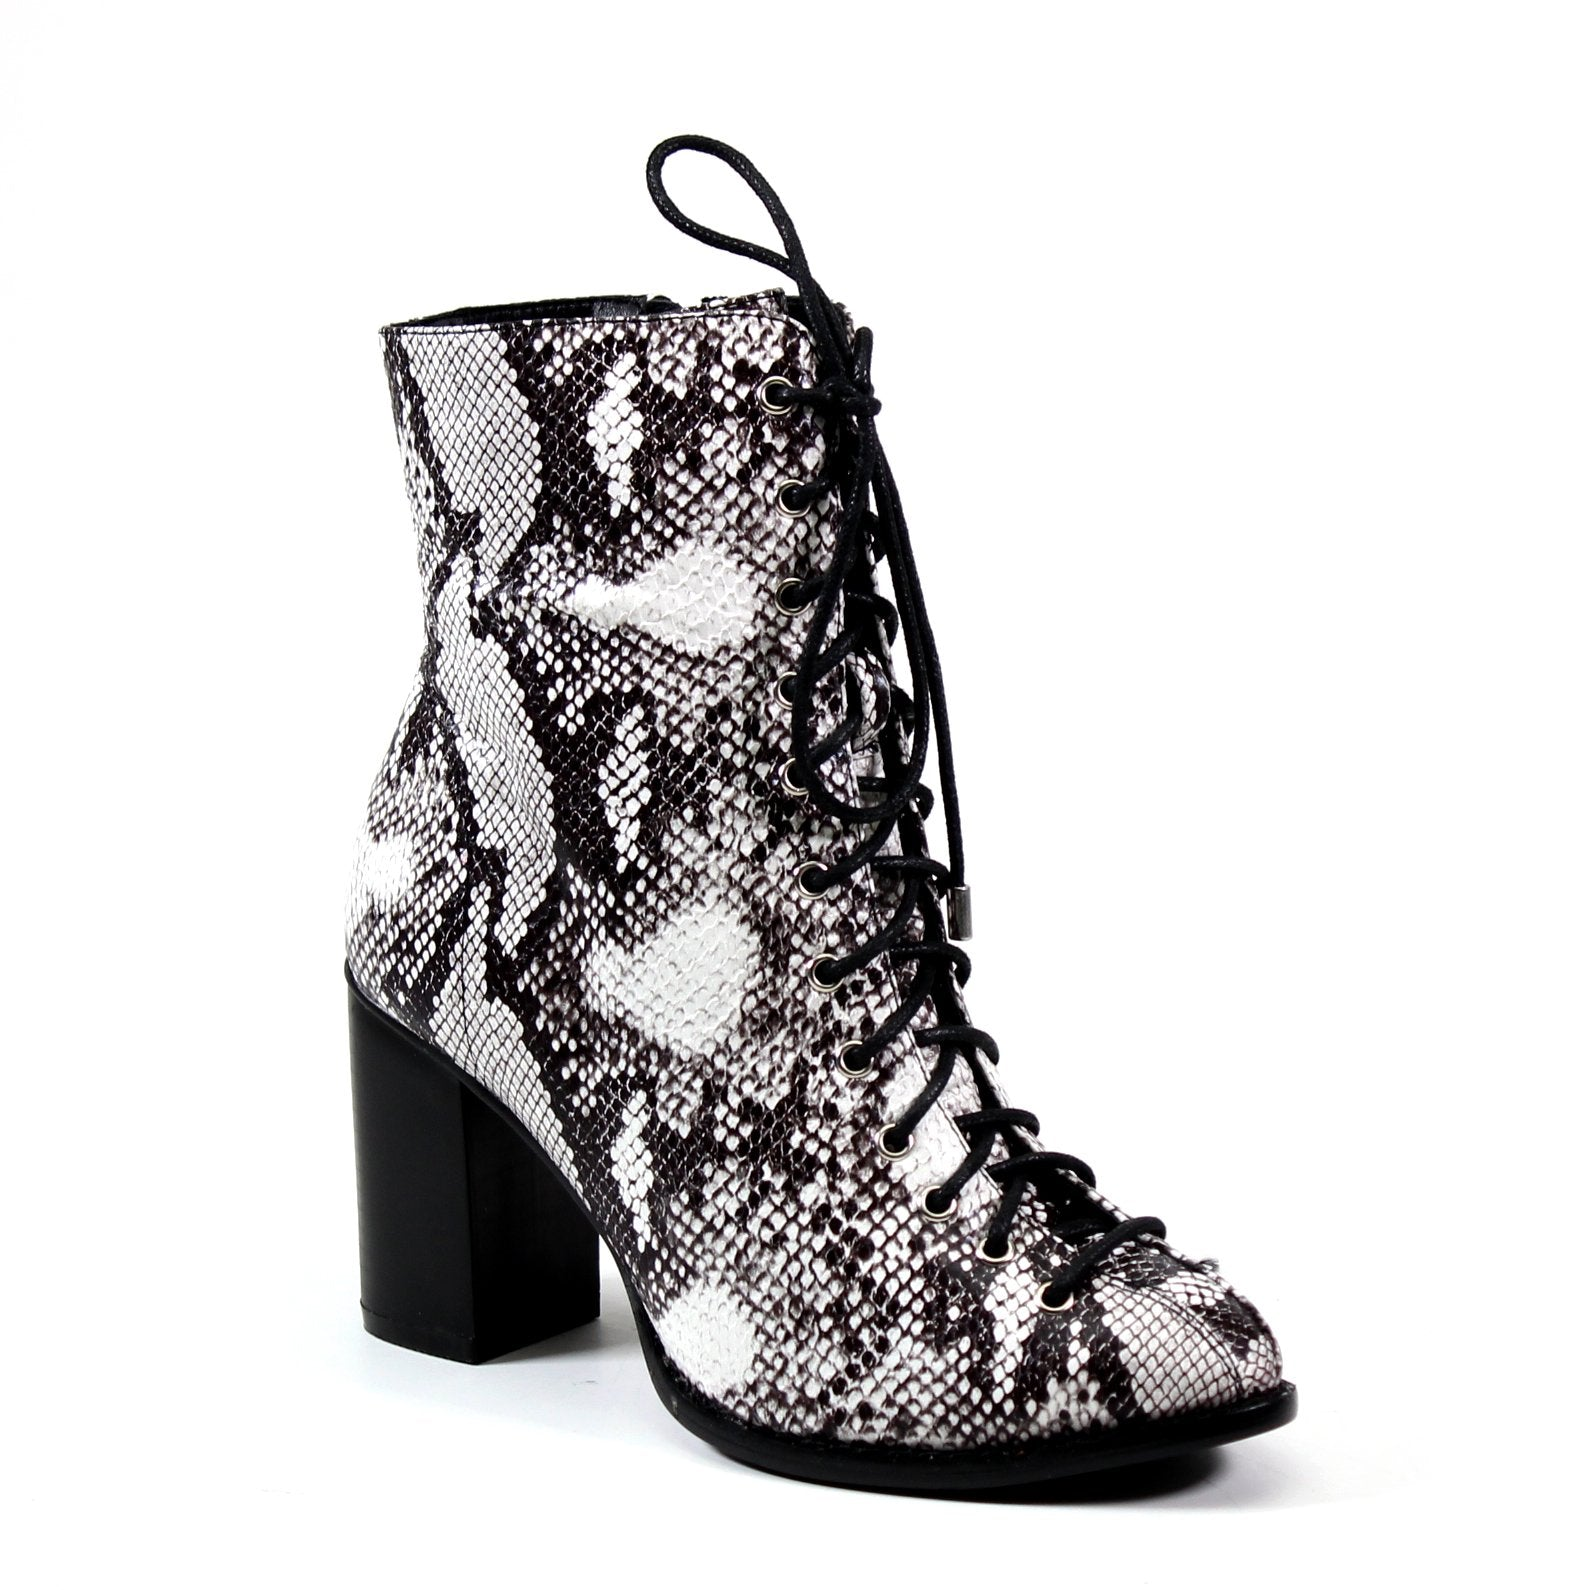 Demand attention when you enter a room in this vegan snakeskin leather lace-up imi leather bootie with inside zip and stacked block heel.